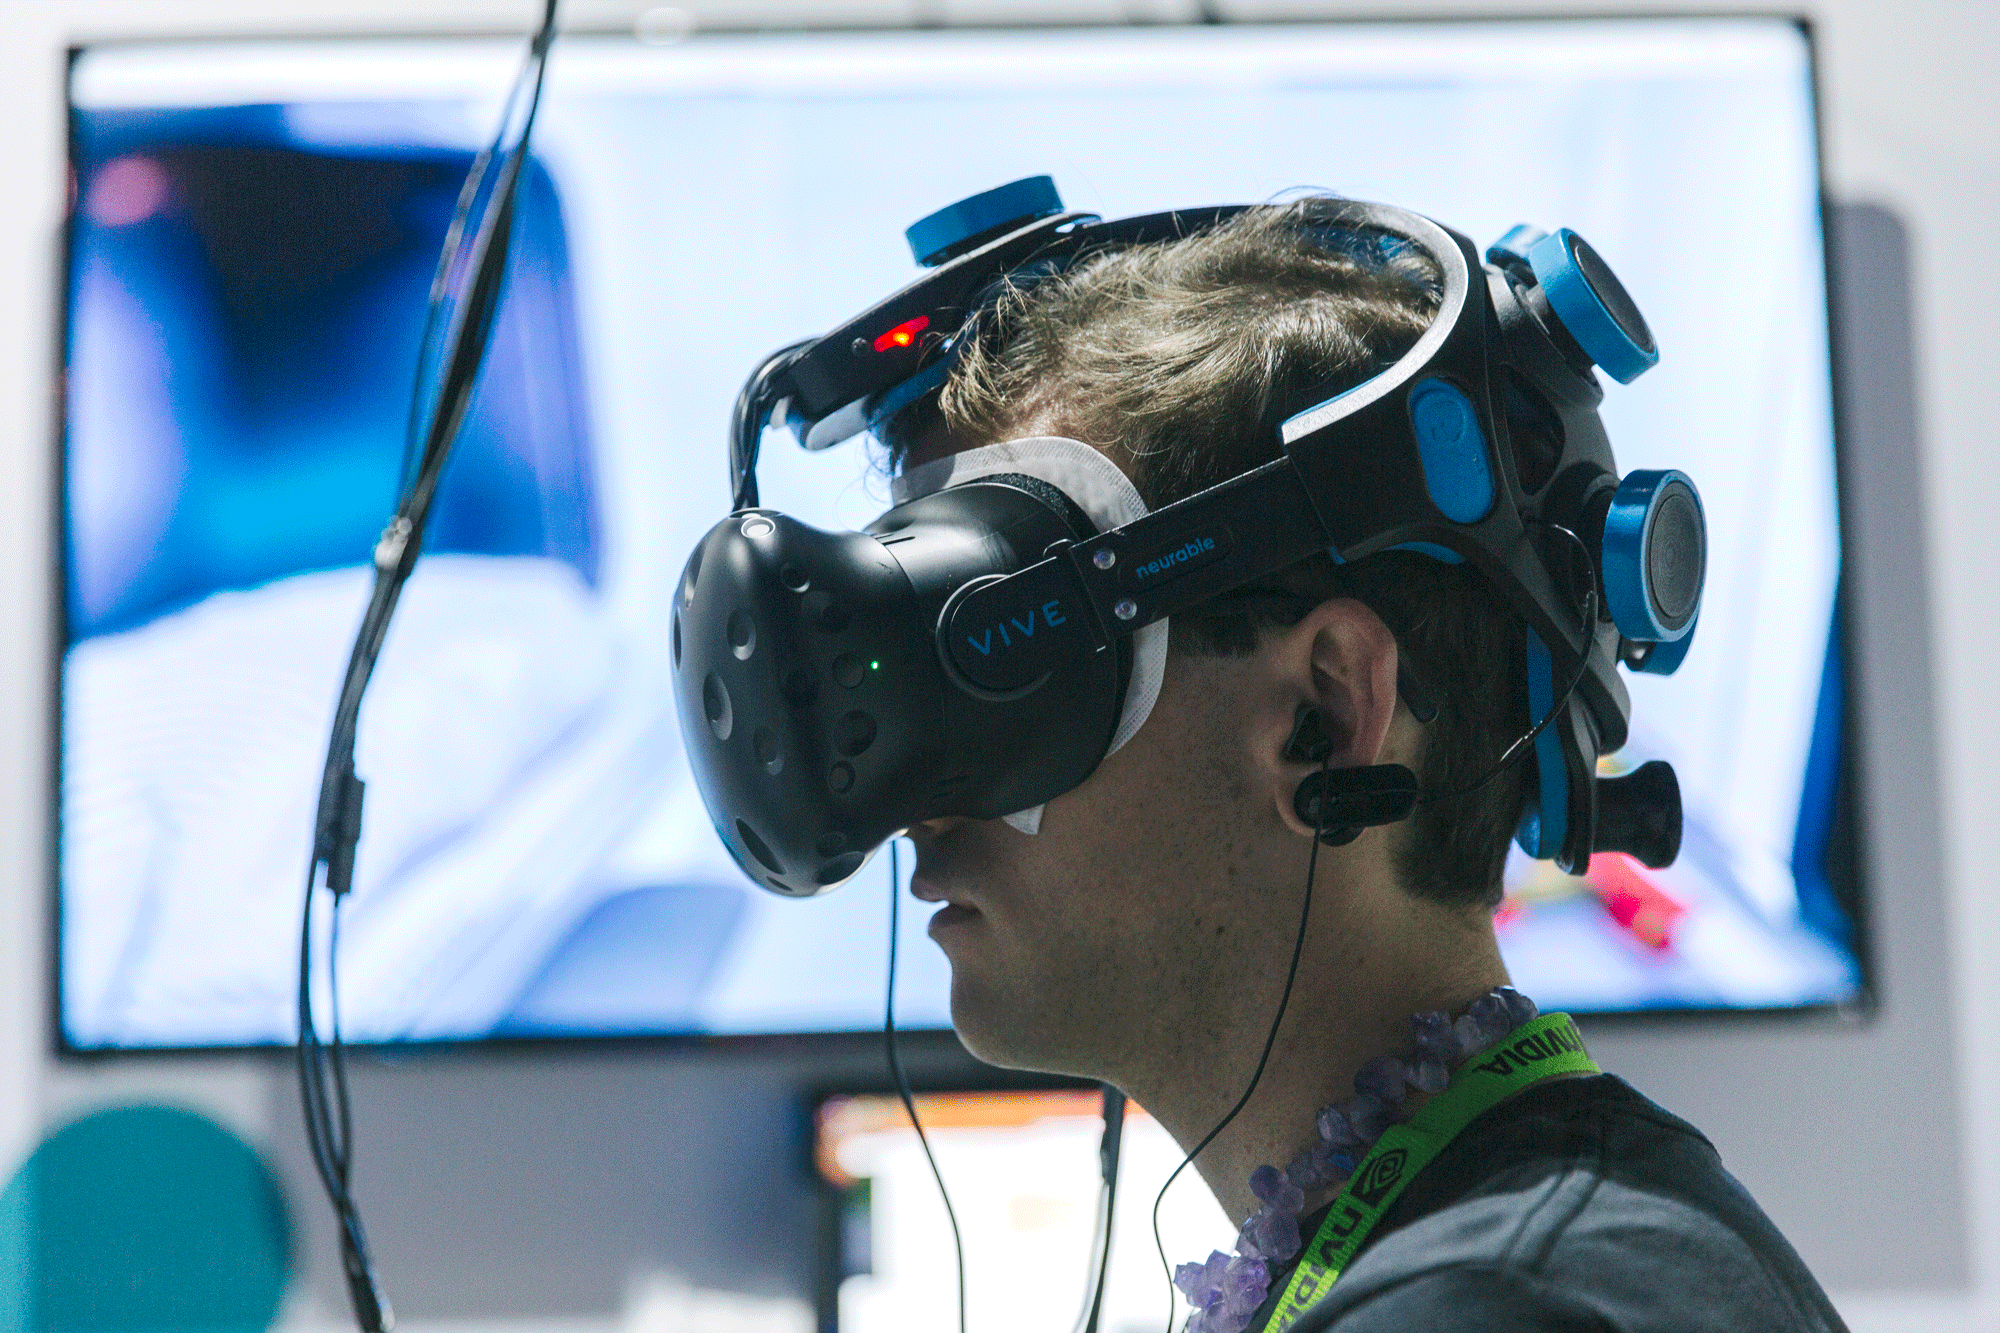 Neurable is working on a virtual-reality video game that you can control with your brain.